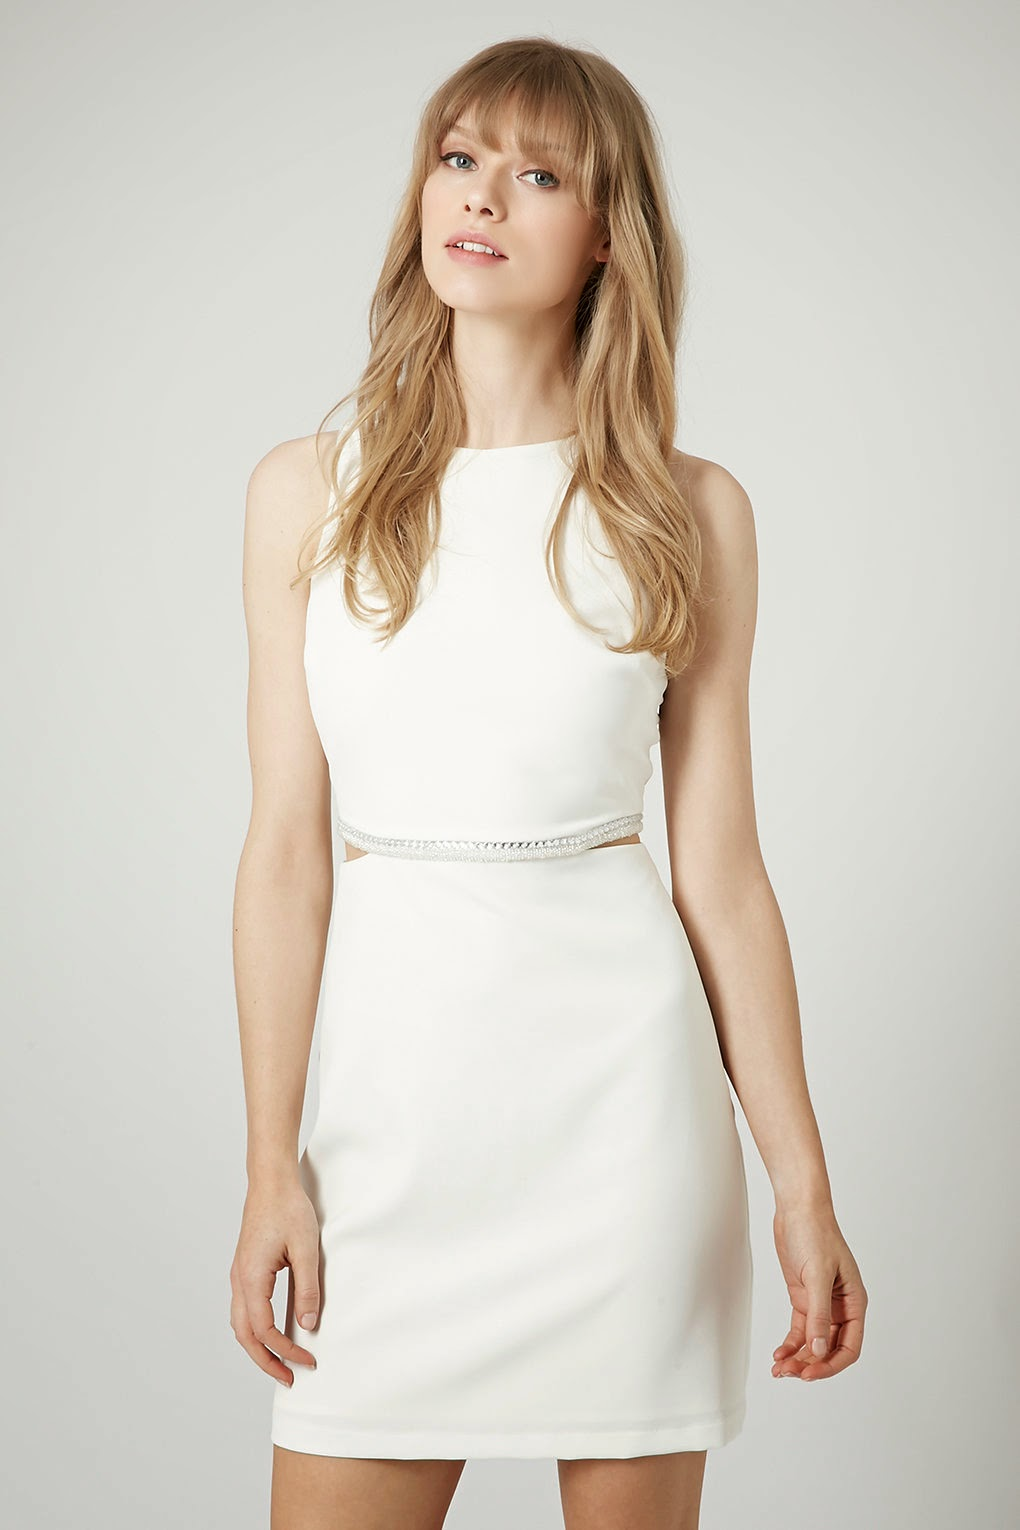 white diamante dress, white bodycon dress topshop,